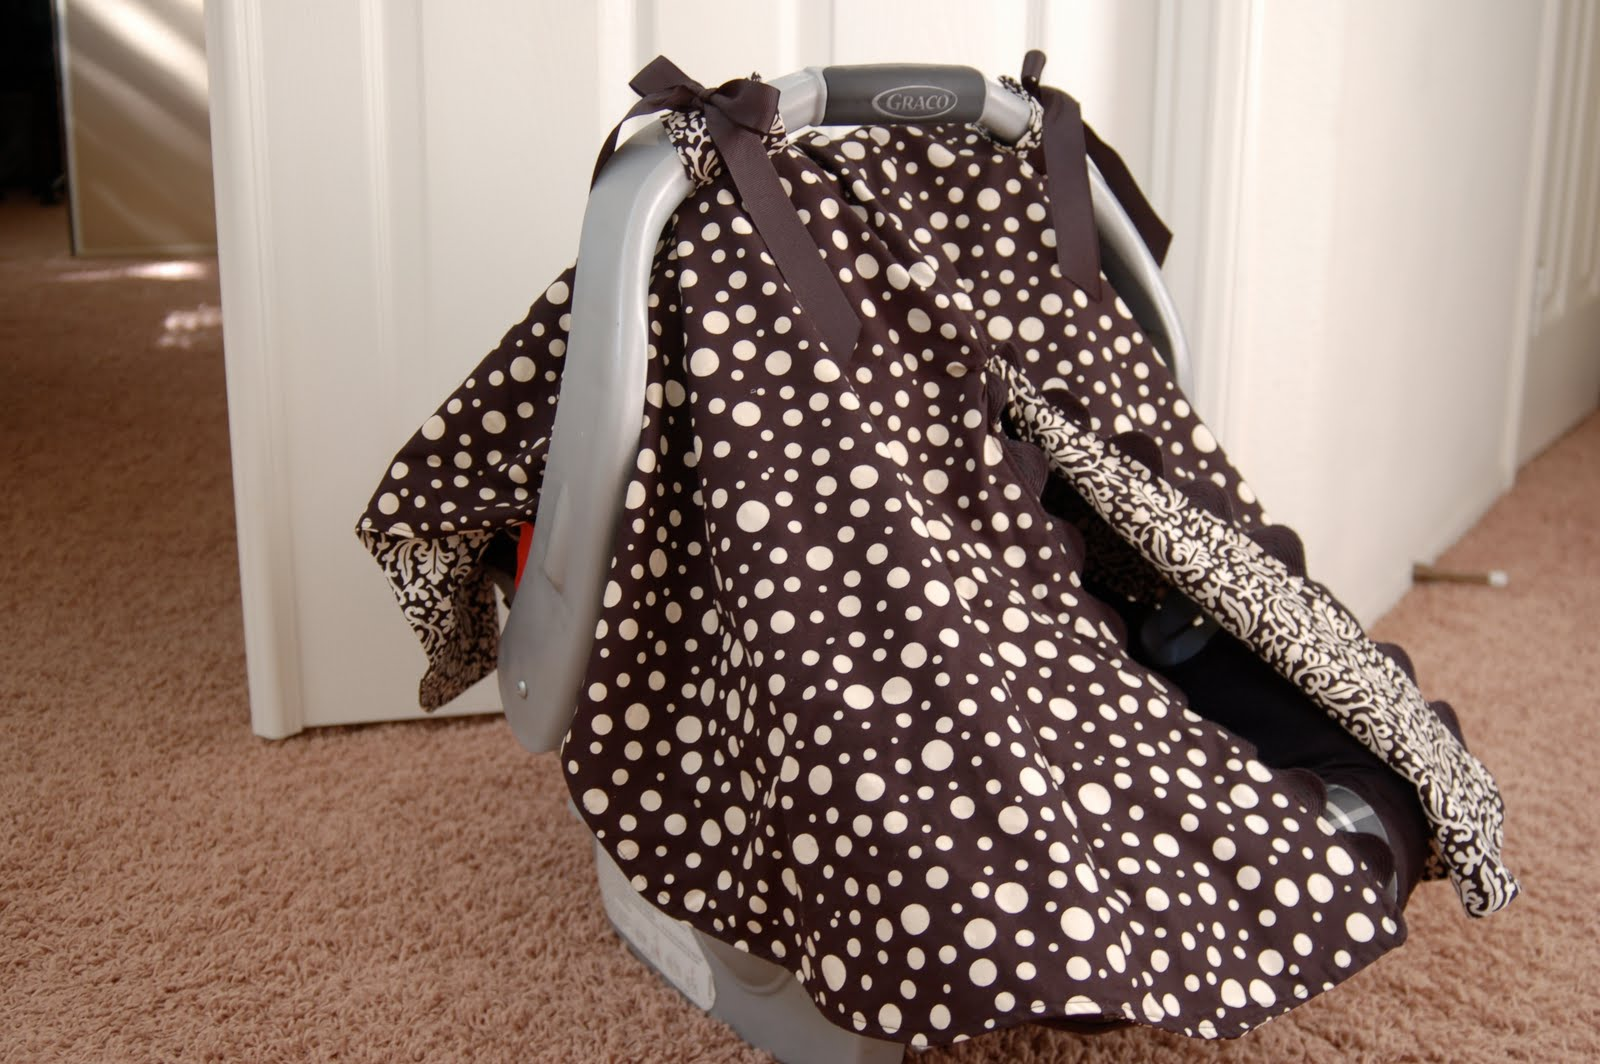 How To Make A Car Seat Canopy With Front Opening